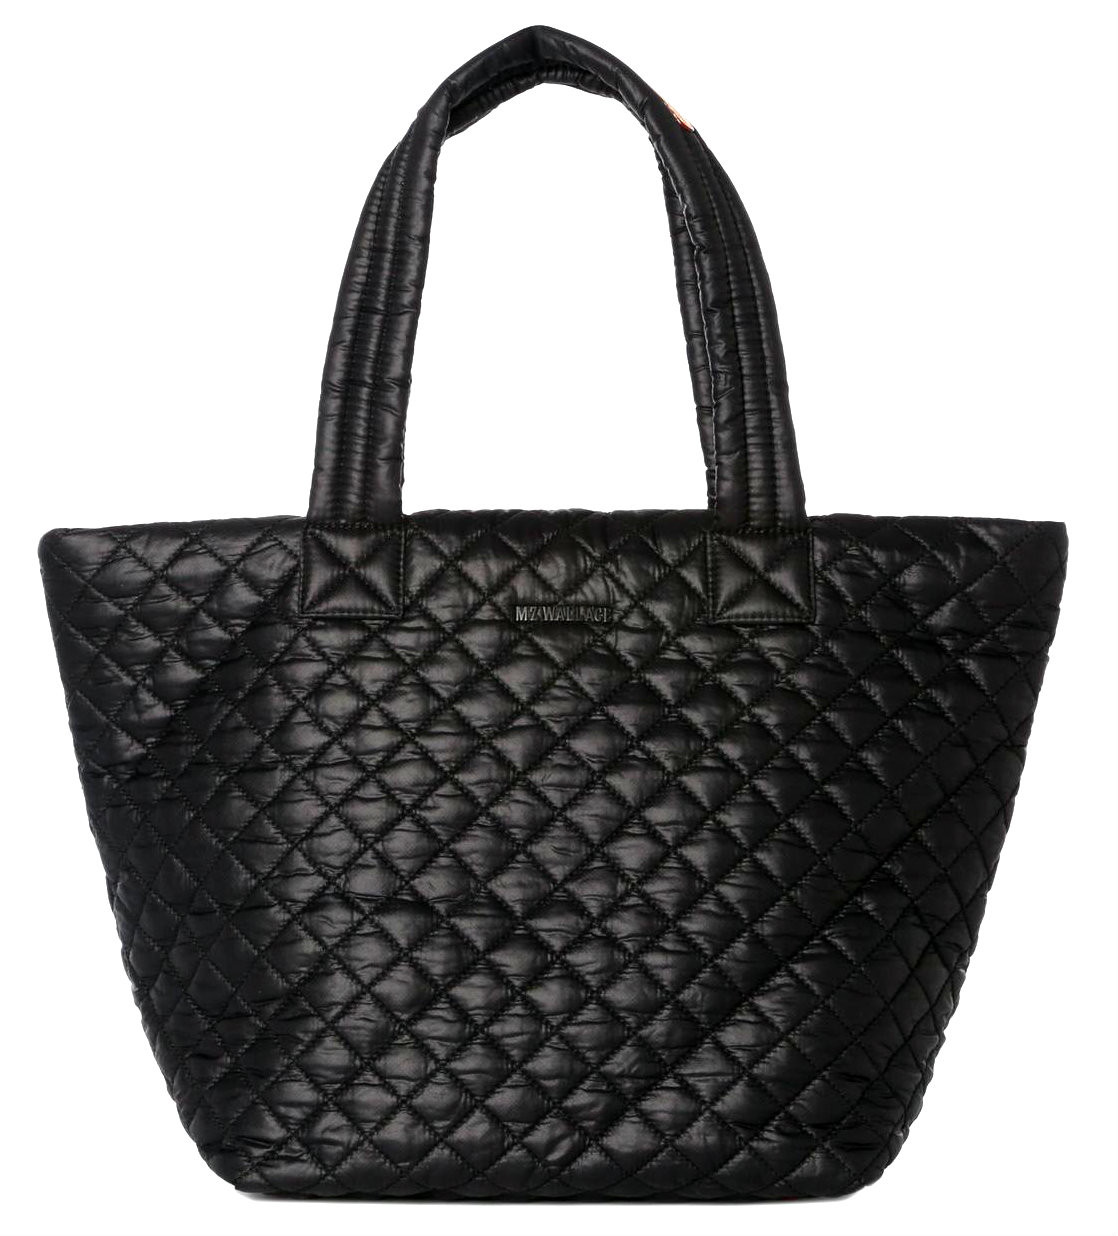 72727c8a8af5 MZ Wallace Medium Metro Tote Handbag. Price: $215.00. Image 1